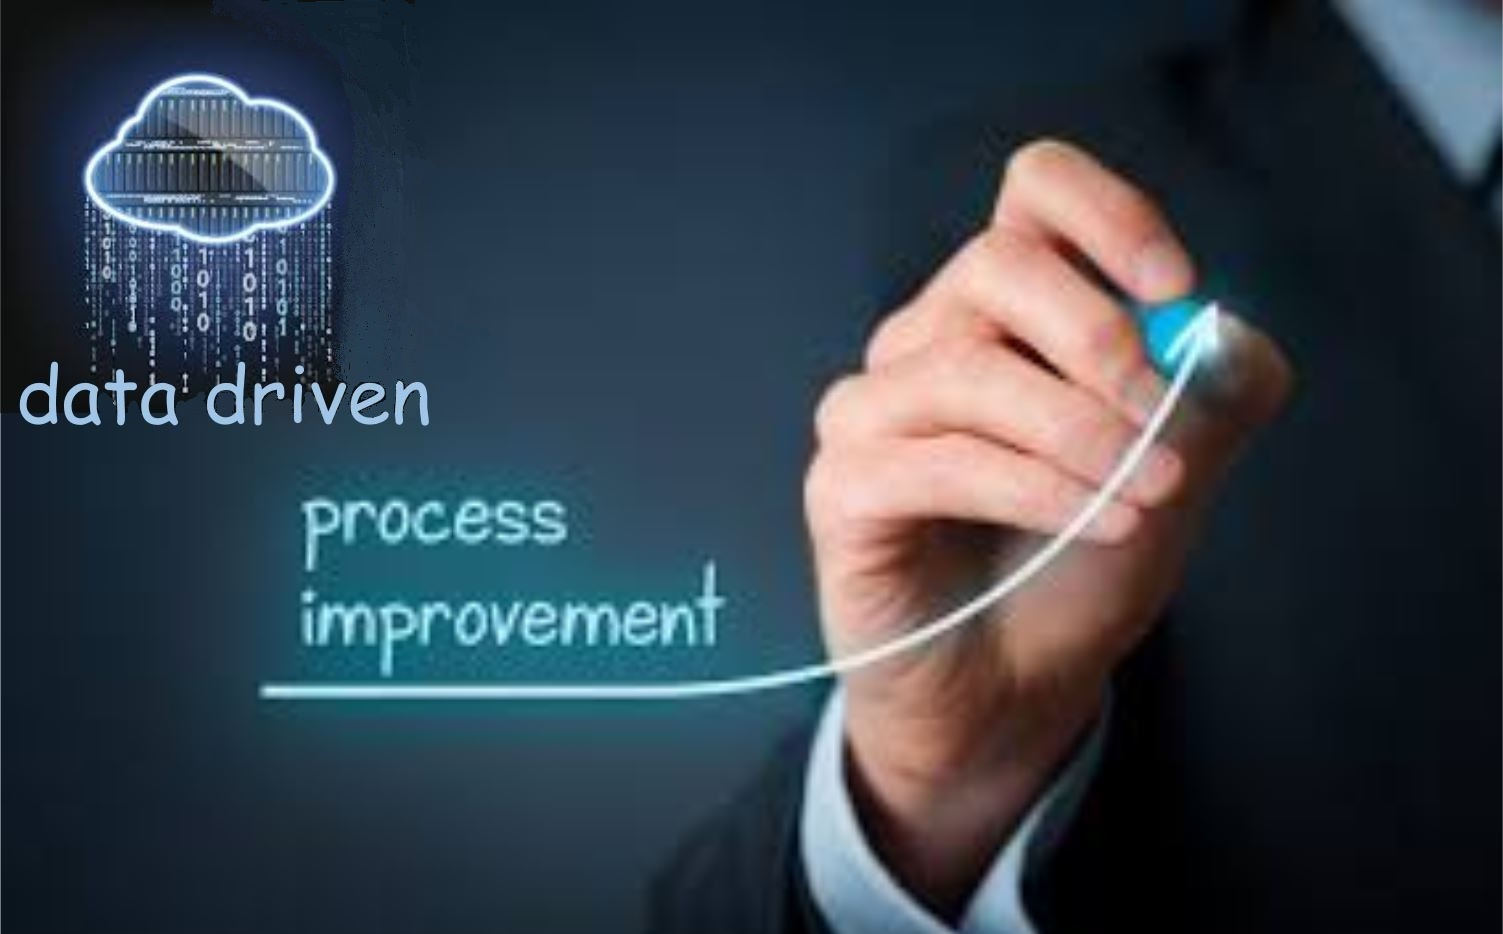 Data driven process improvement